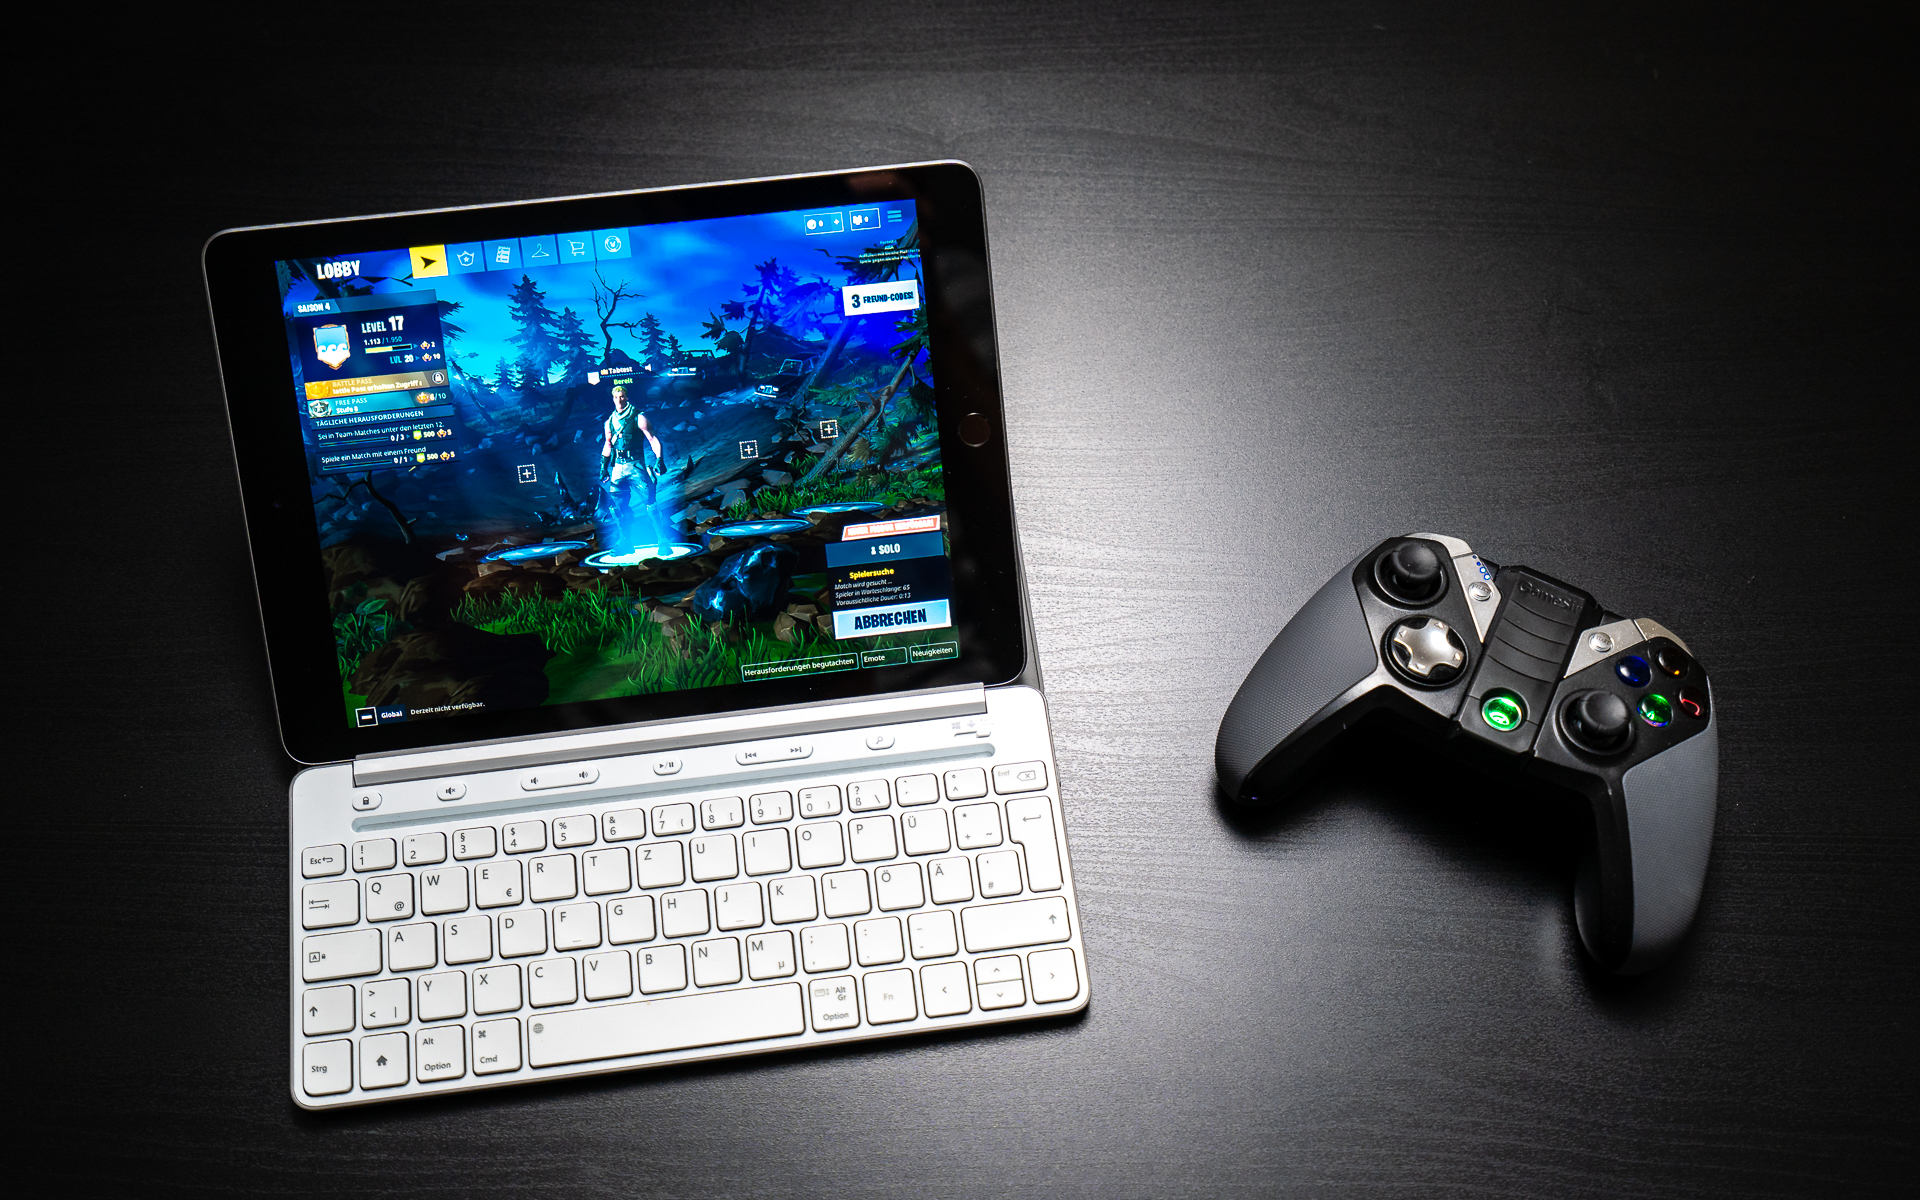 Fortnite For Ipad Can You Play With Keyboard Mouse Or Controller